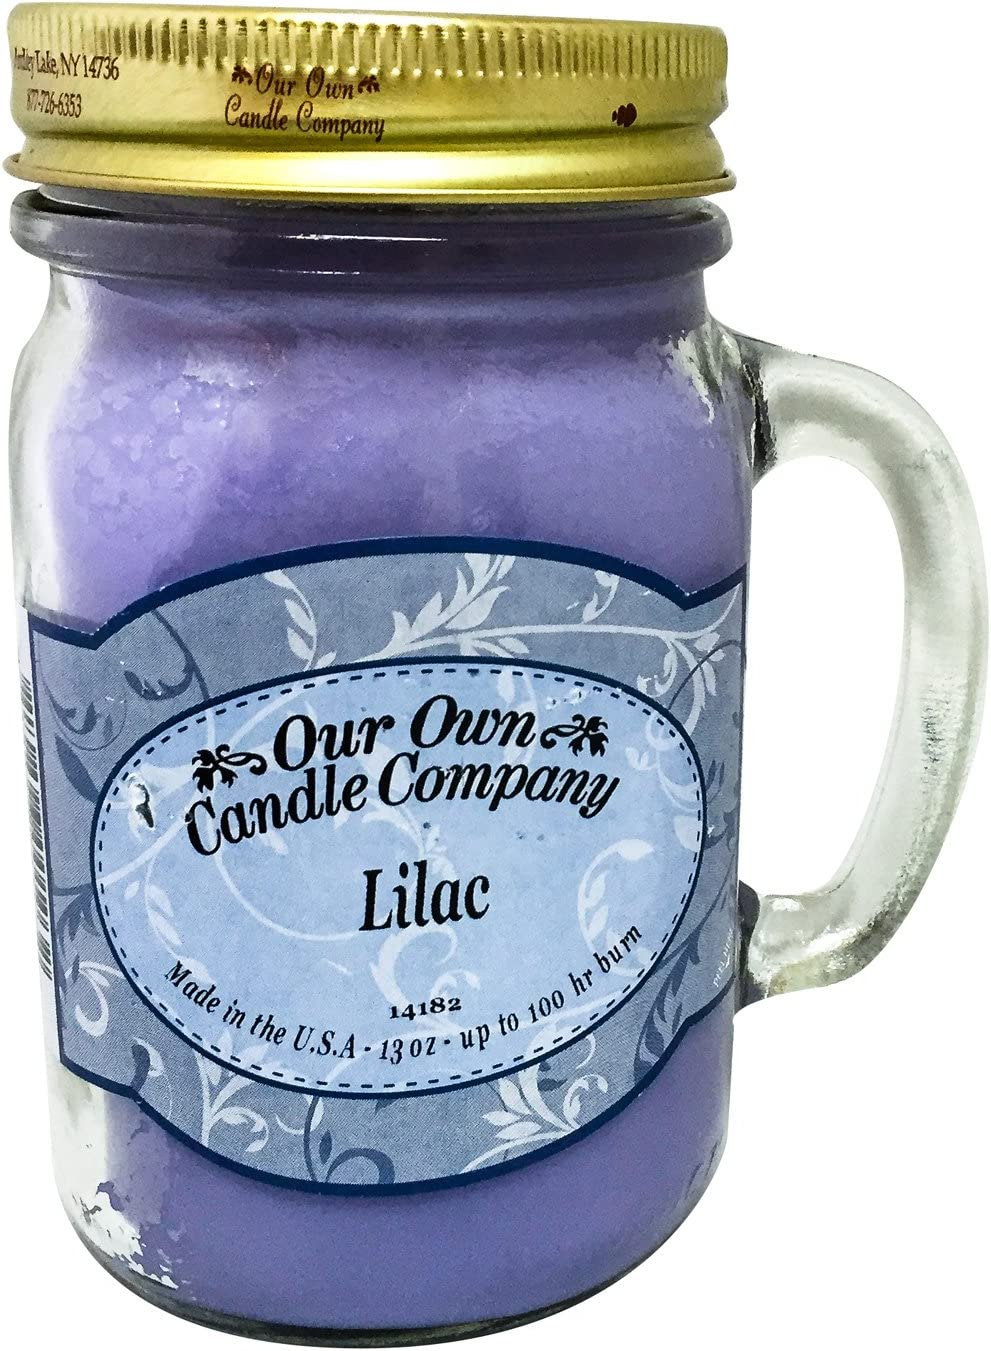 Our Own Candle Company Lilac Scented 13 Ounce Mason Jar Candle